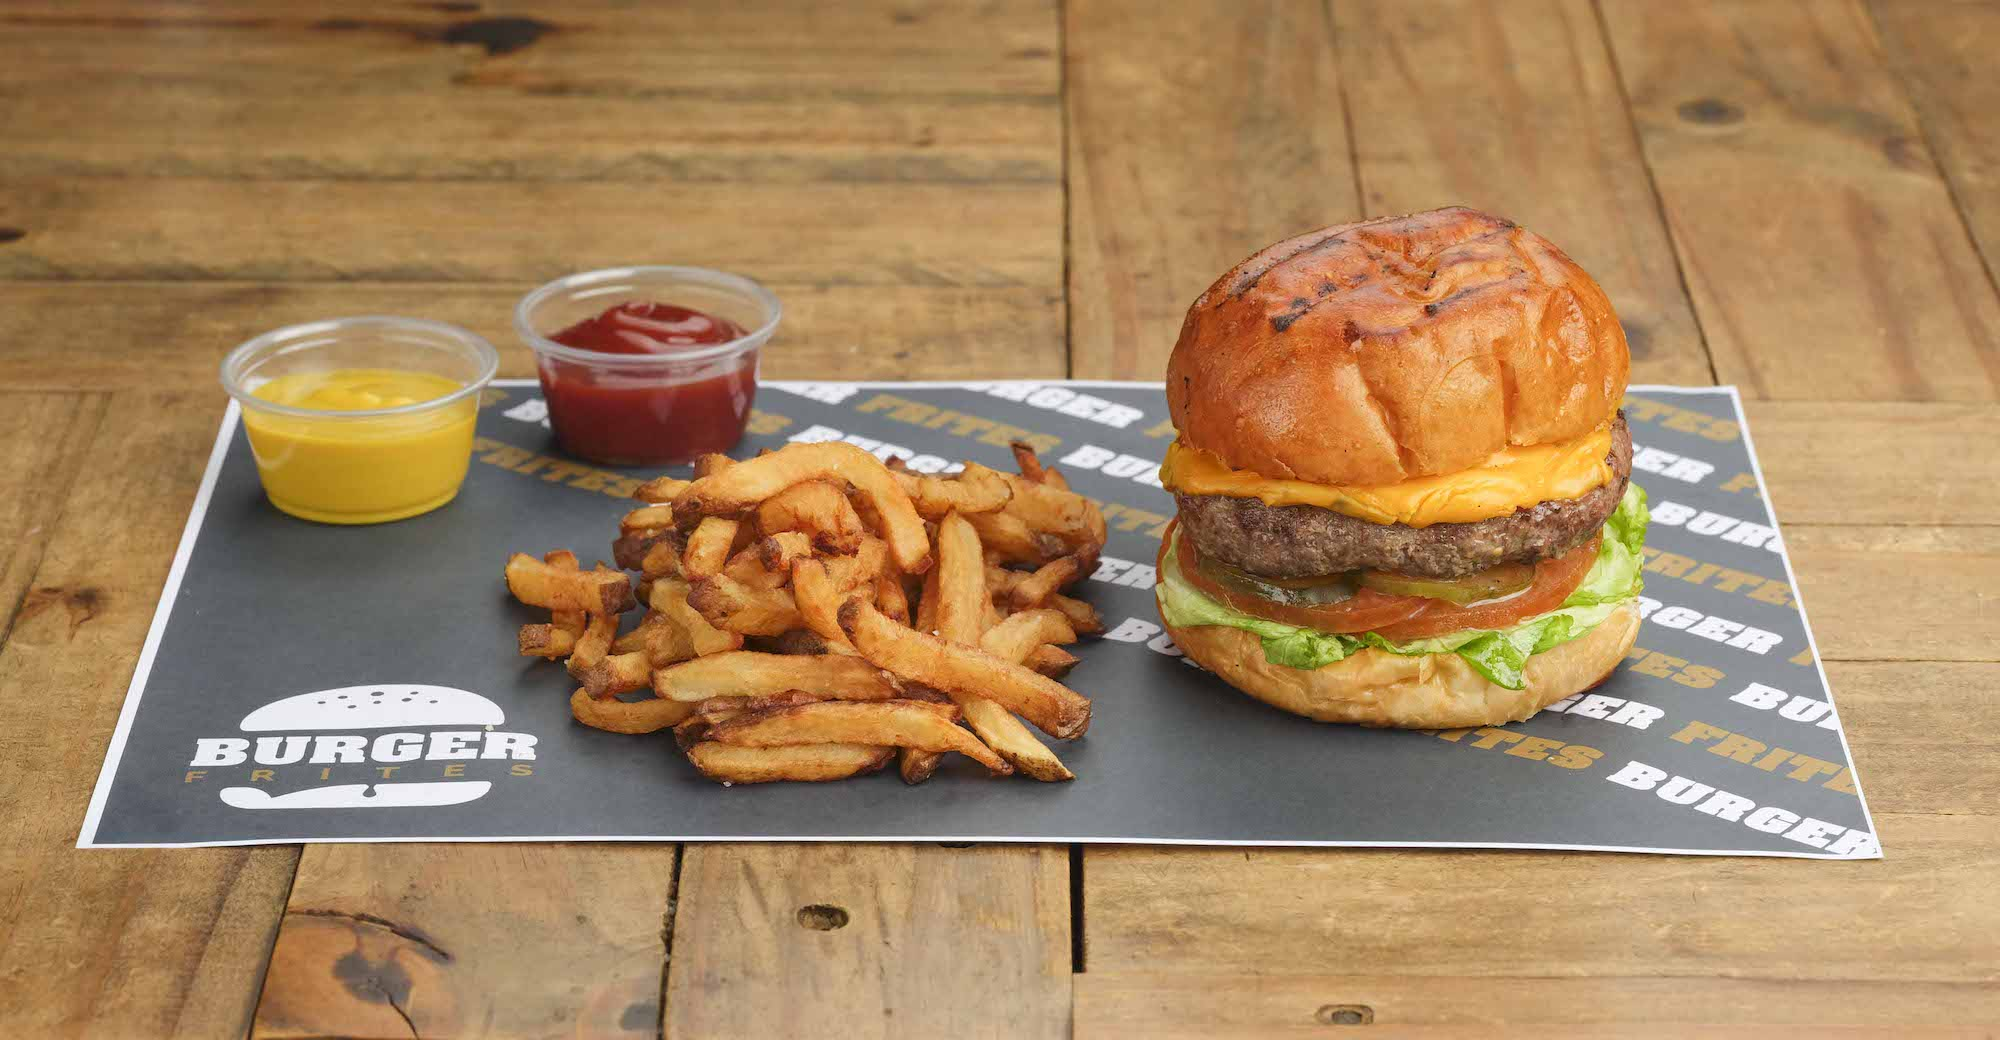 Food Photography by Jose Jeuland Burger and Fries on a table